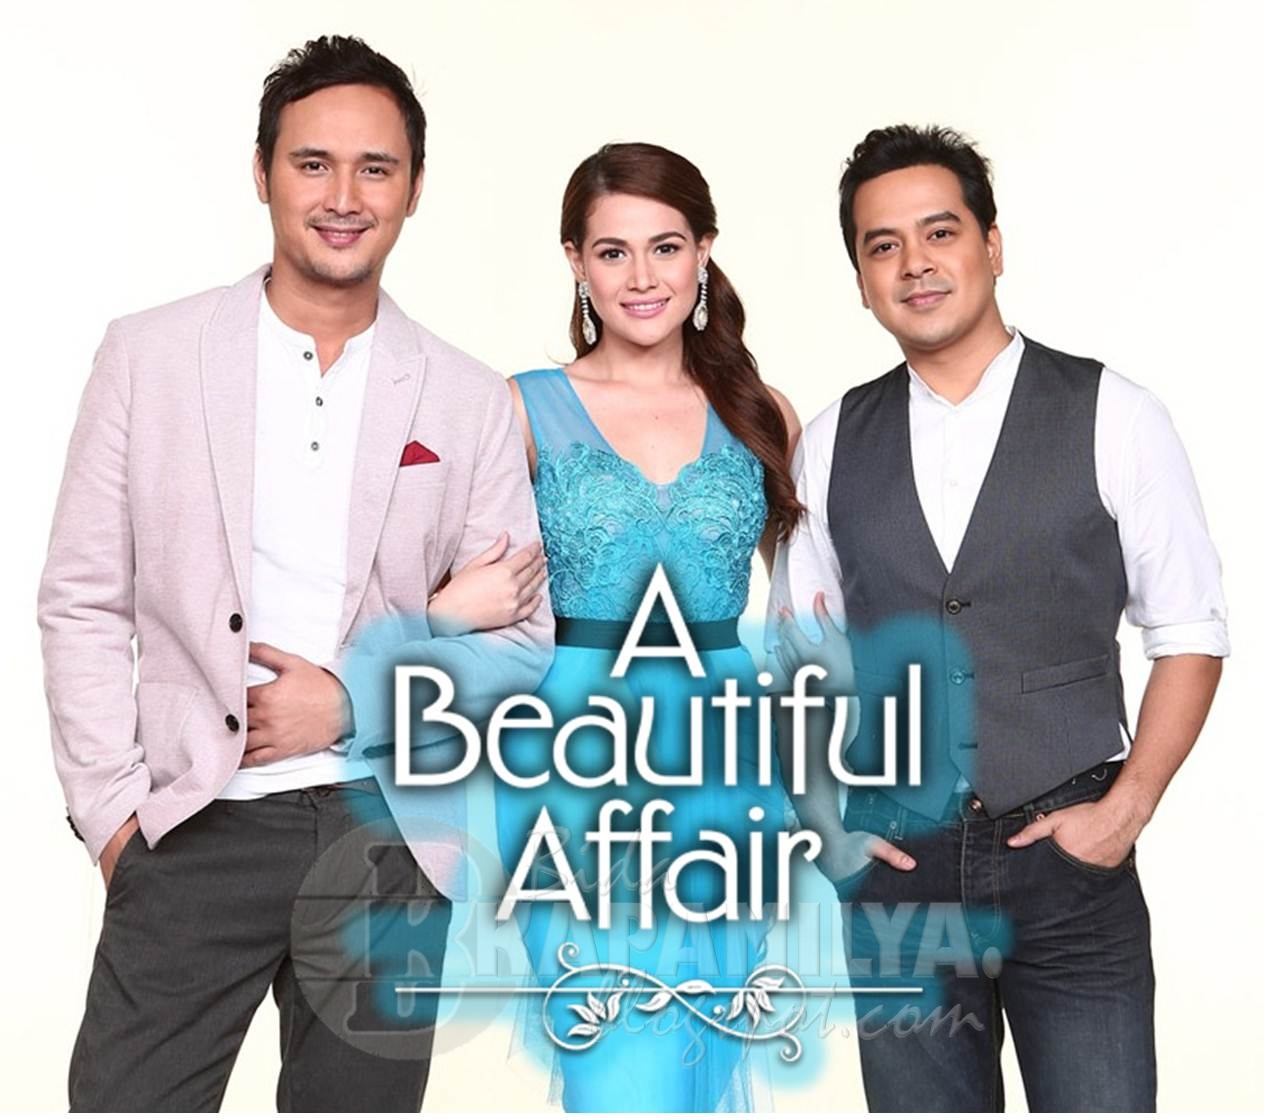 A BEAUTIFUL AFFAIR - OCT. 30, 2012 PART 2/4